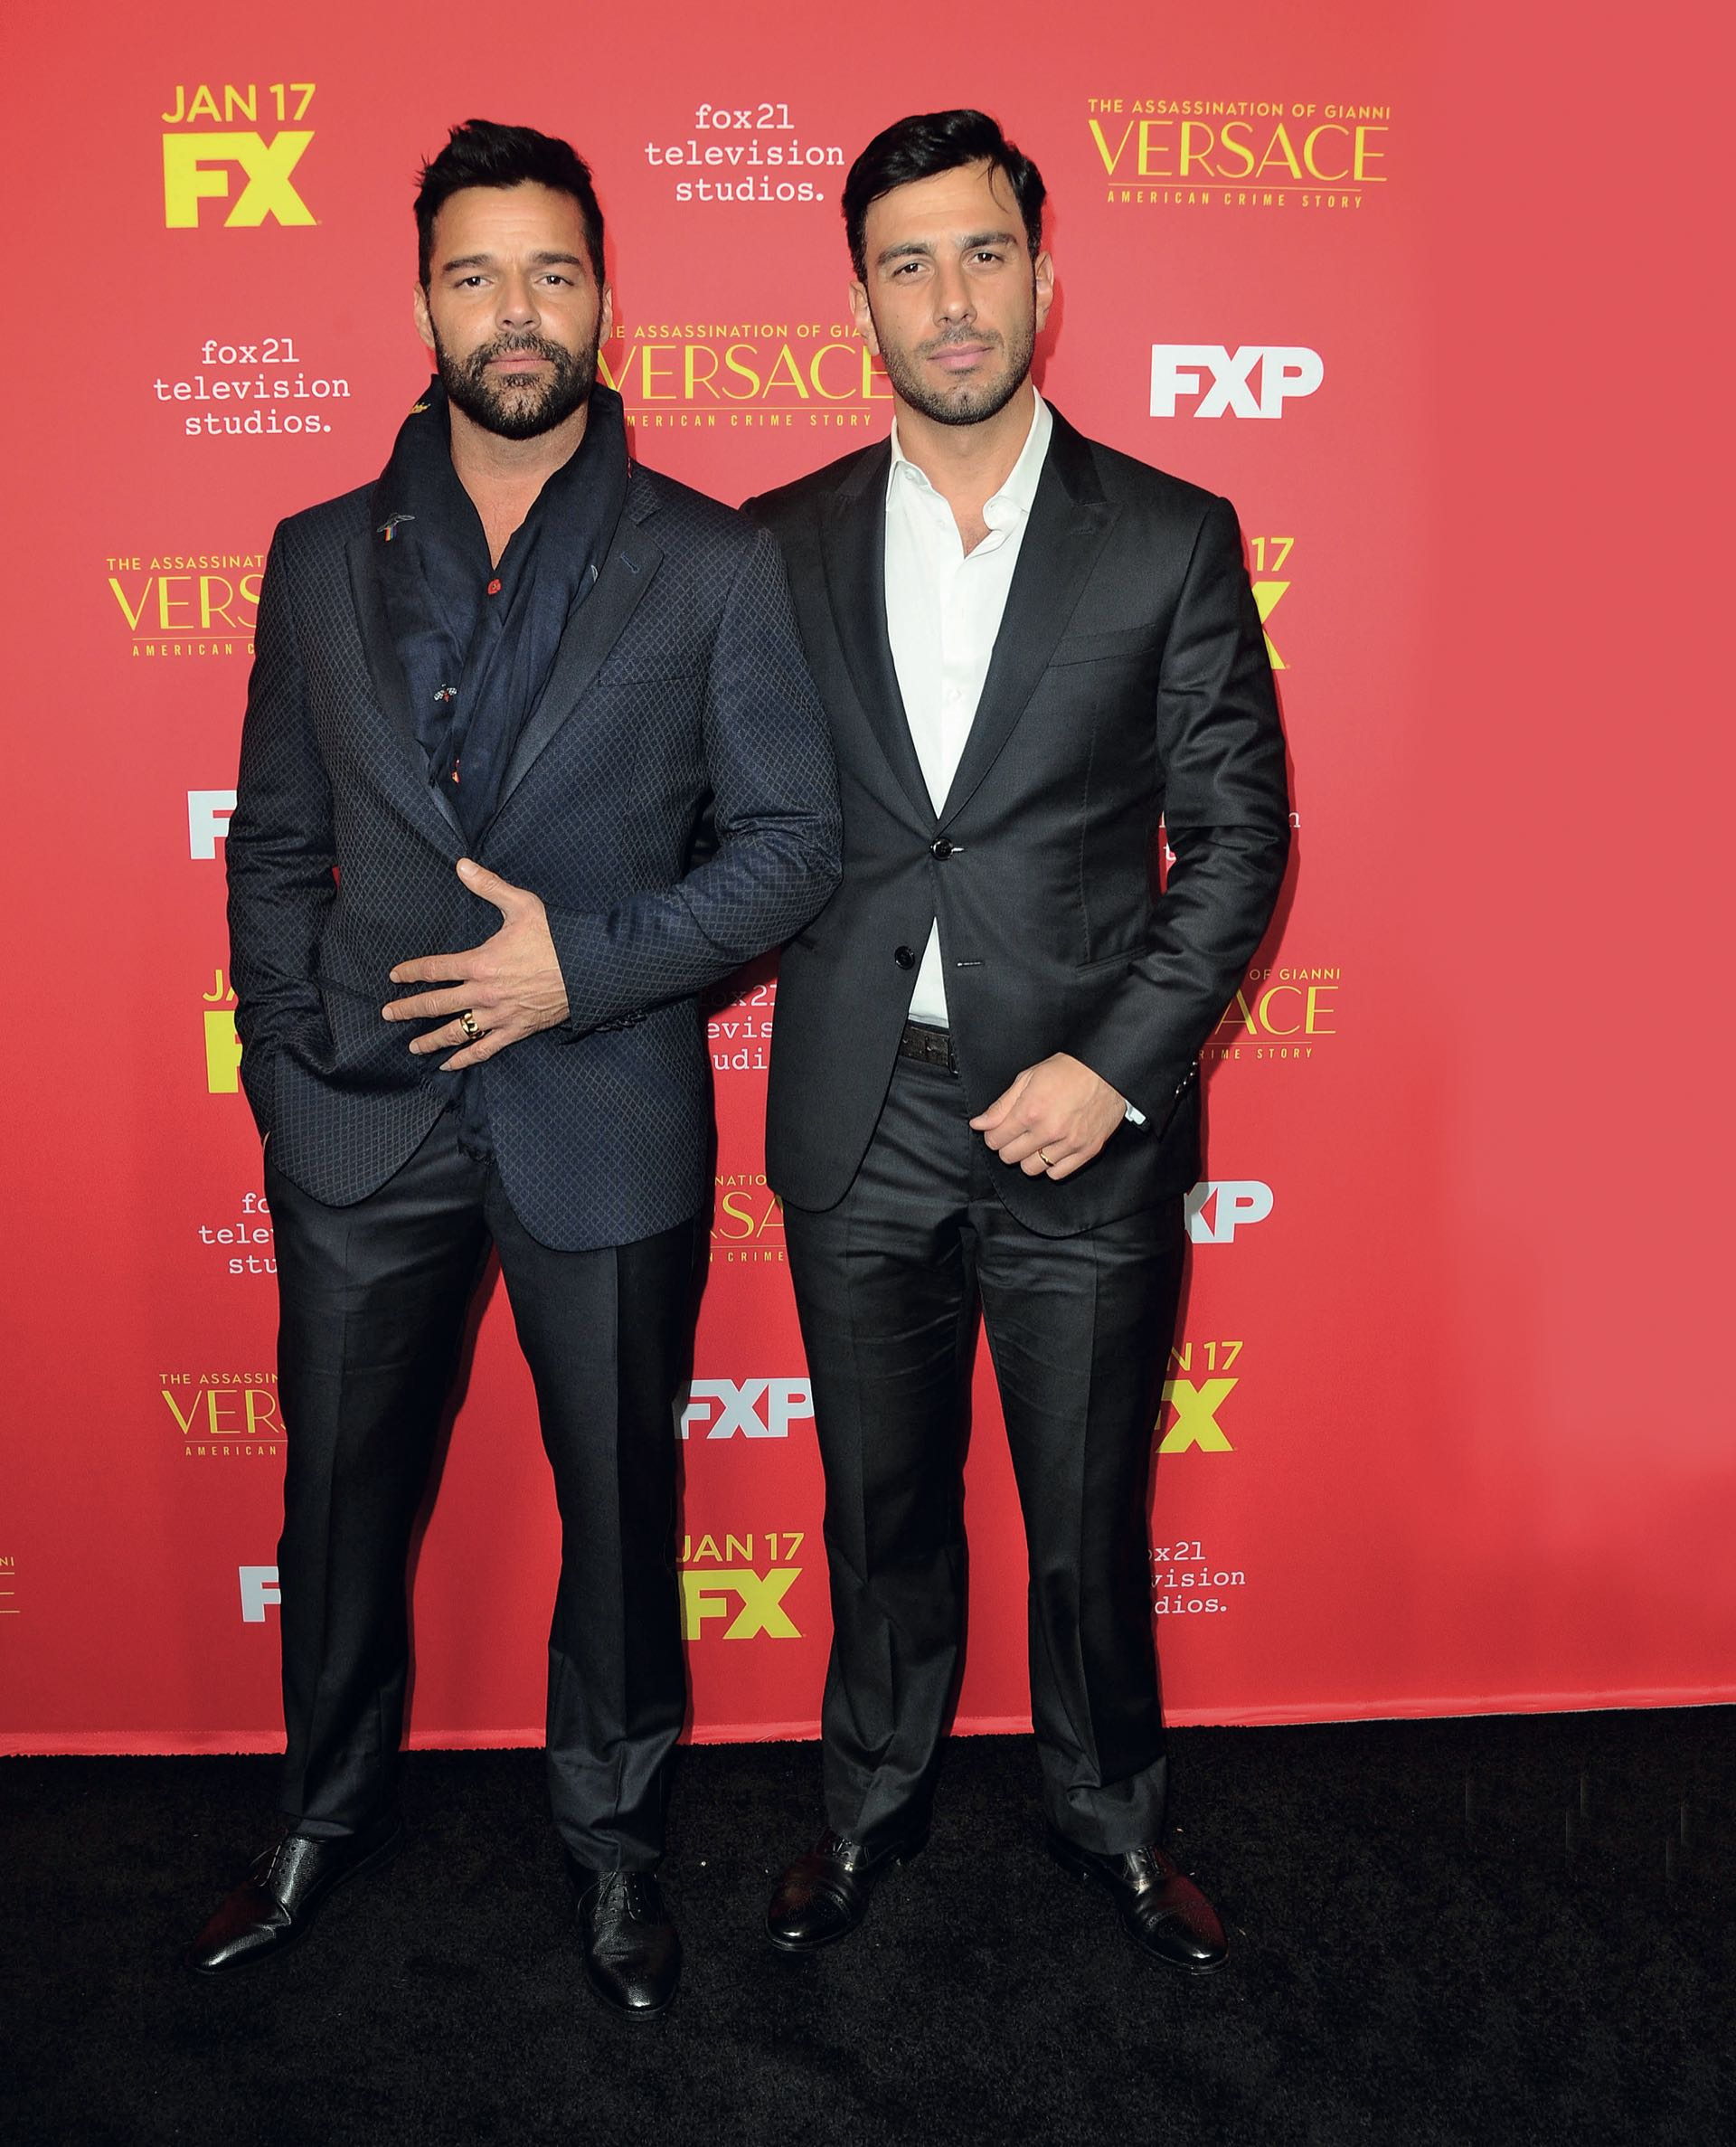 En la presentación de The assassination of Gianni Versace, serie de FX donde el cantante interpreta al novio del diseñador italiano. Foto © 2018 Startraks Photo/The Grosby Group